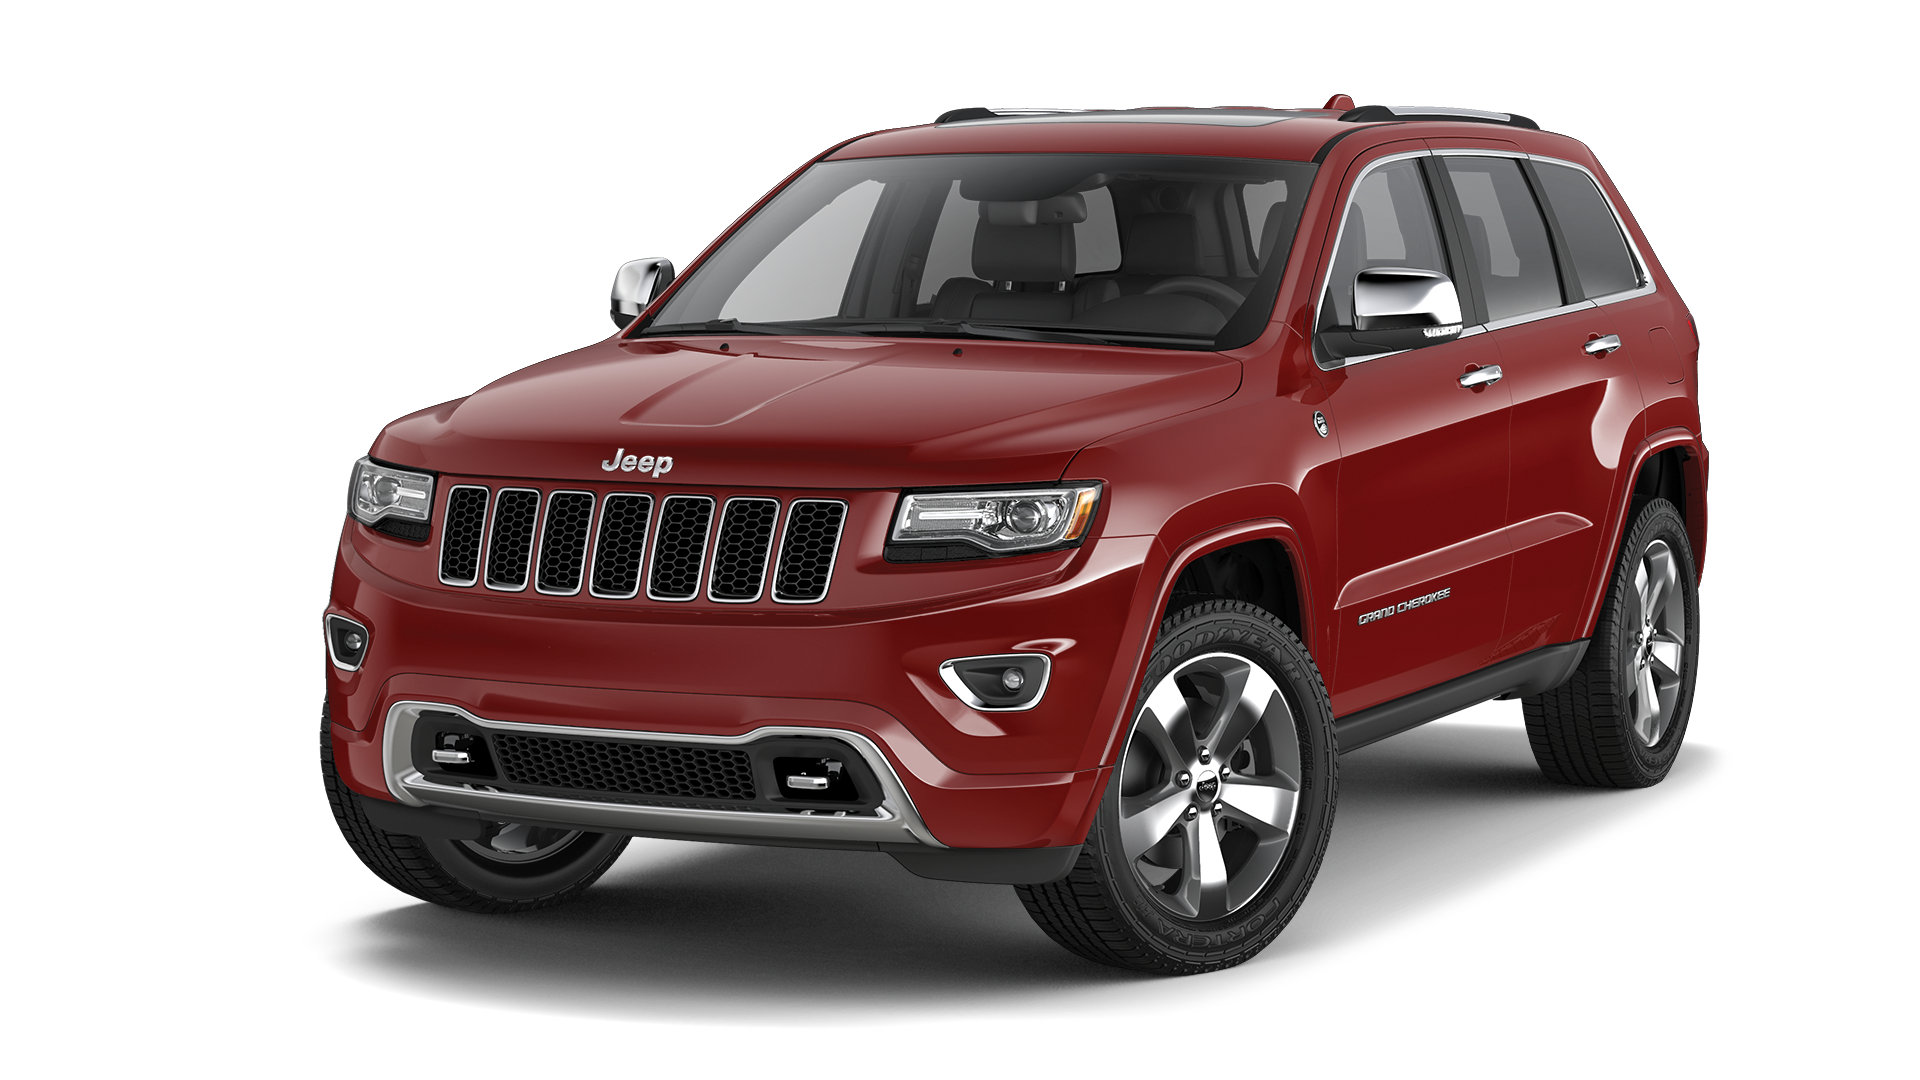 2014 jeep grand cherokee wins midsize suv challenge. Black Bedroom Furniture Sets. Home Design Ideas